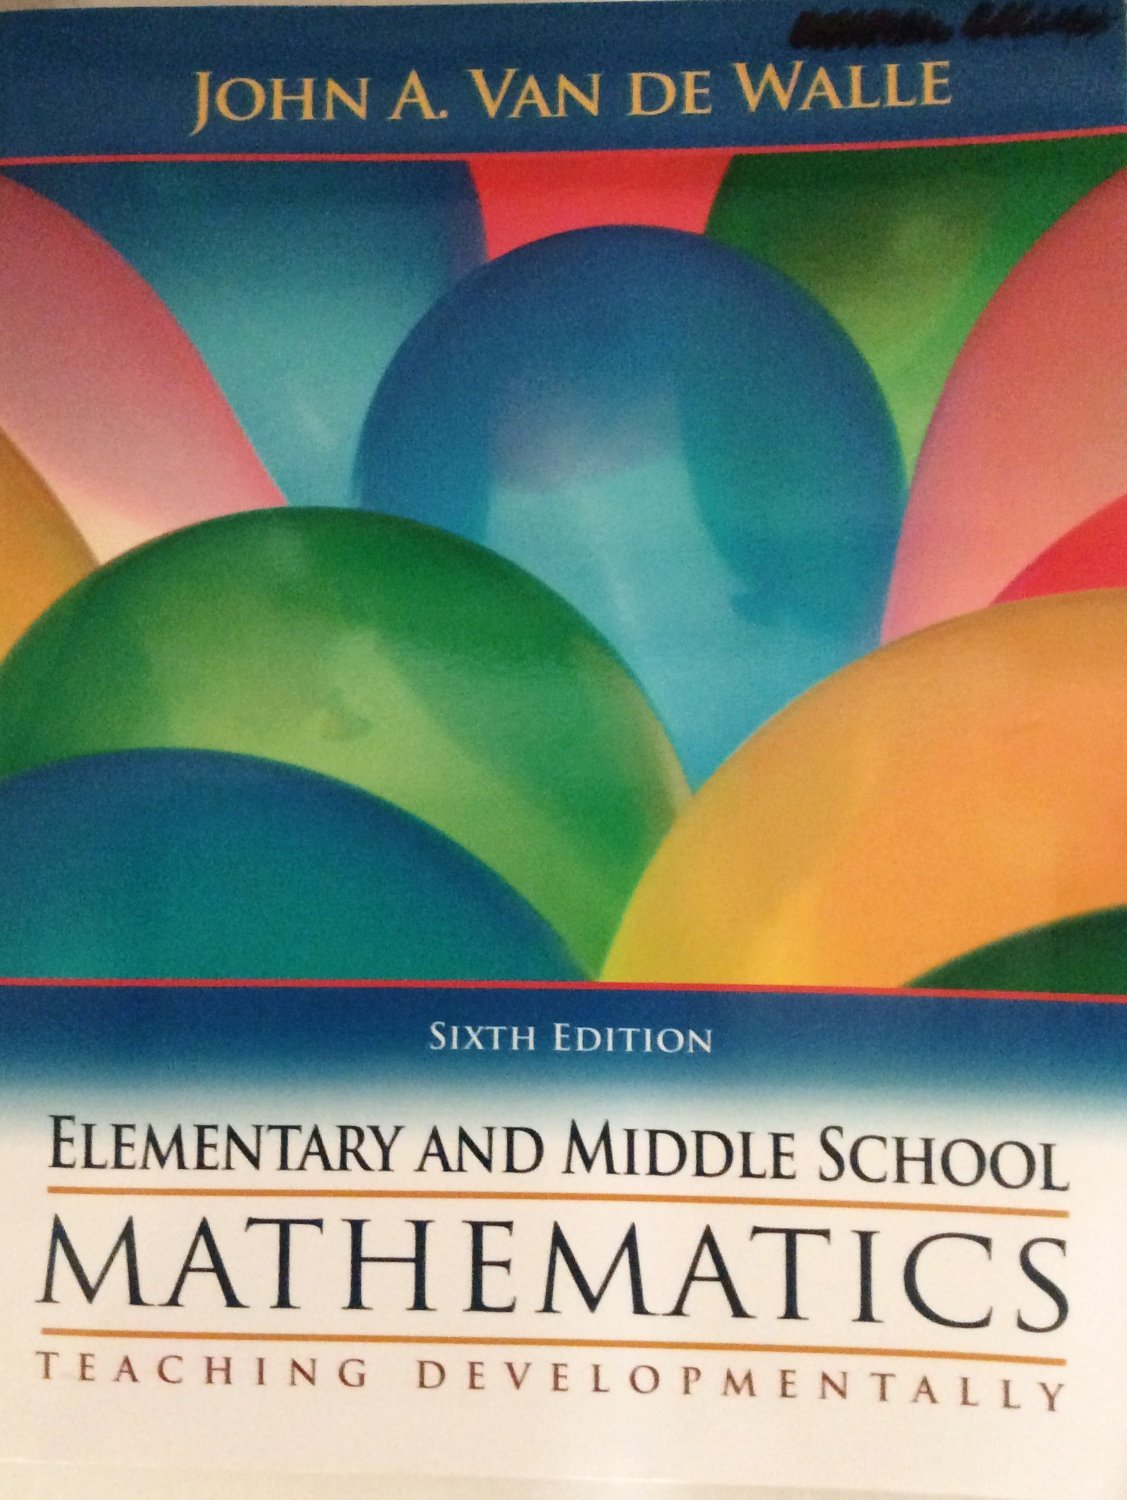 Elementary And Middle School Mathematics by John A Van De Walle ...